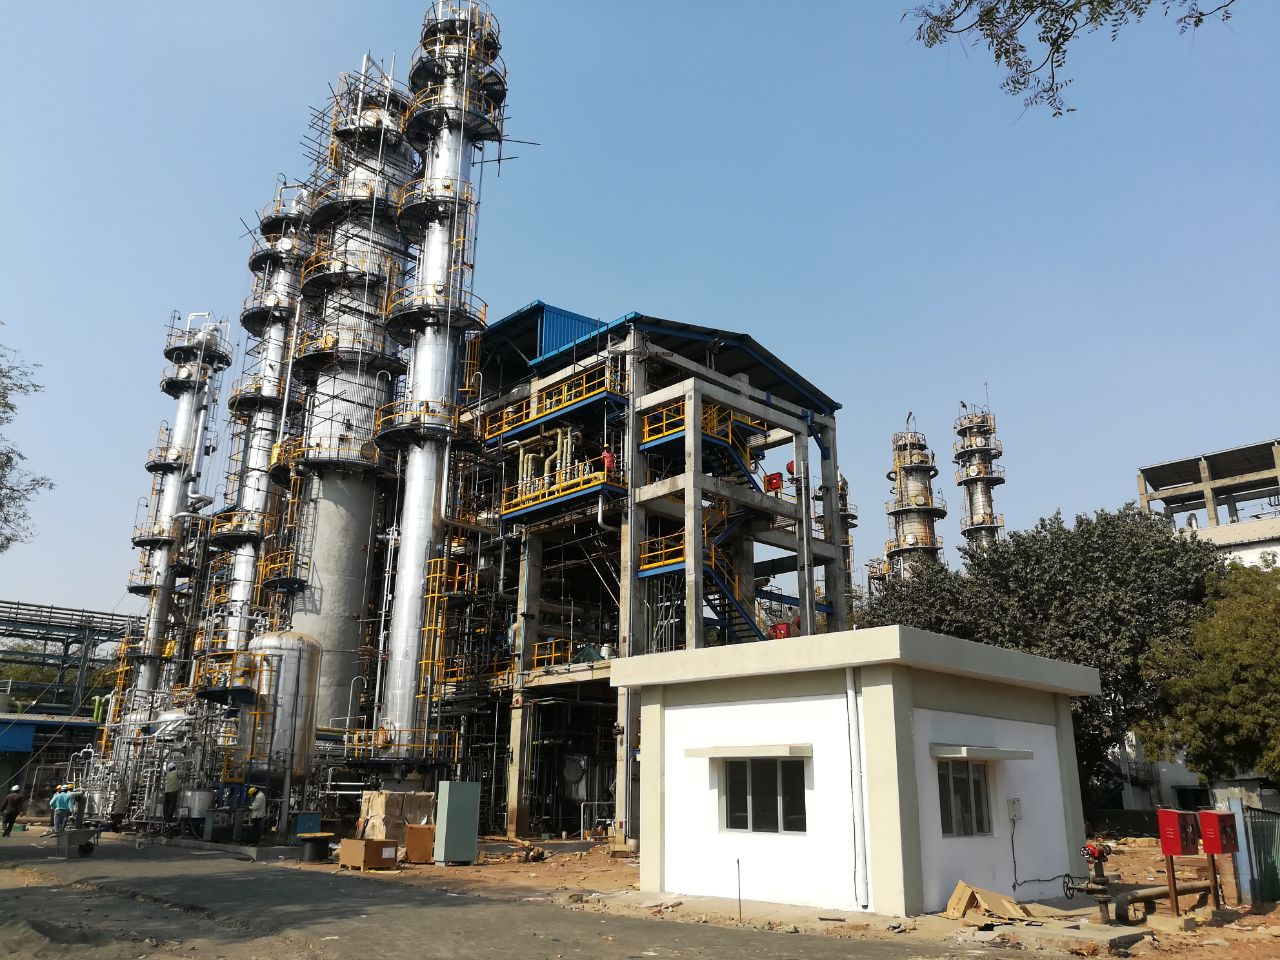 Refinery & Petrochemicals 2